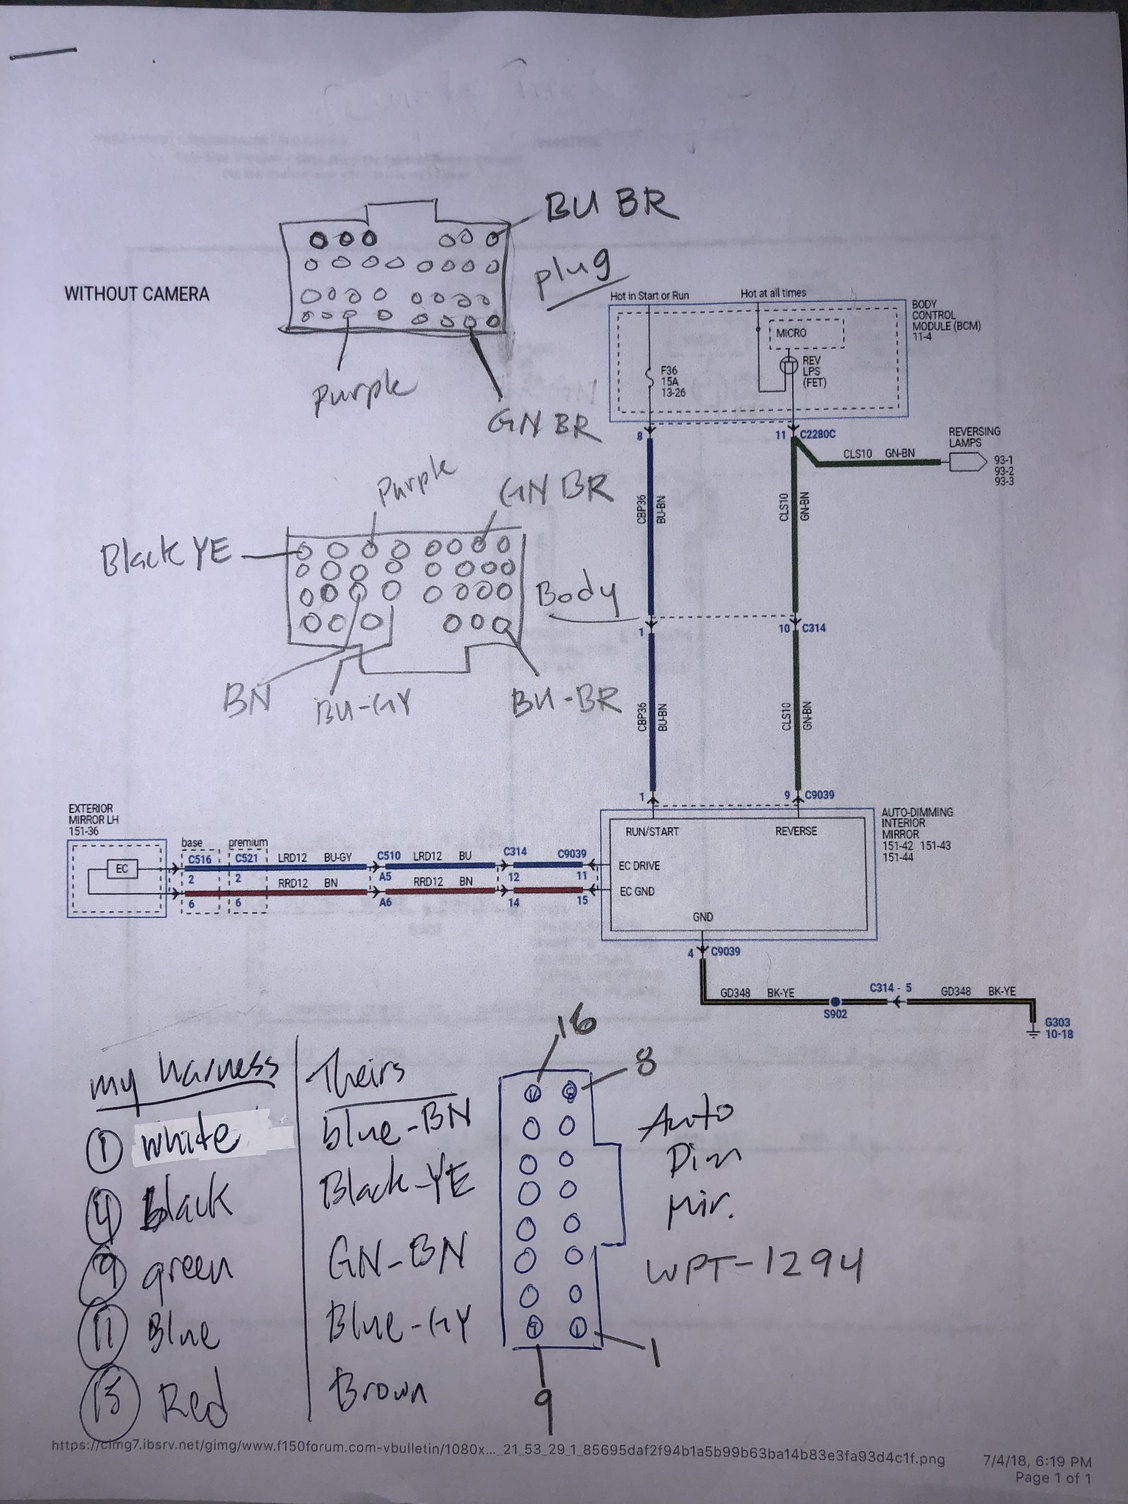 Auto Dimming Mirrors Ford F150 Forum Community Of Truck Fans Wiring Diagram Needed My Notes Not Clean But Has All The Info For 2018 Xl Diagrams Are A 2017 Since They Havent Released To New Drawings Yet